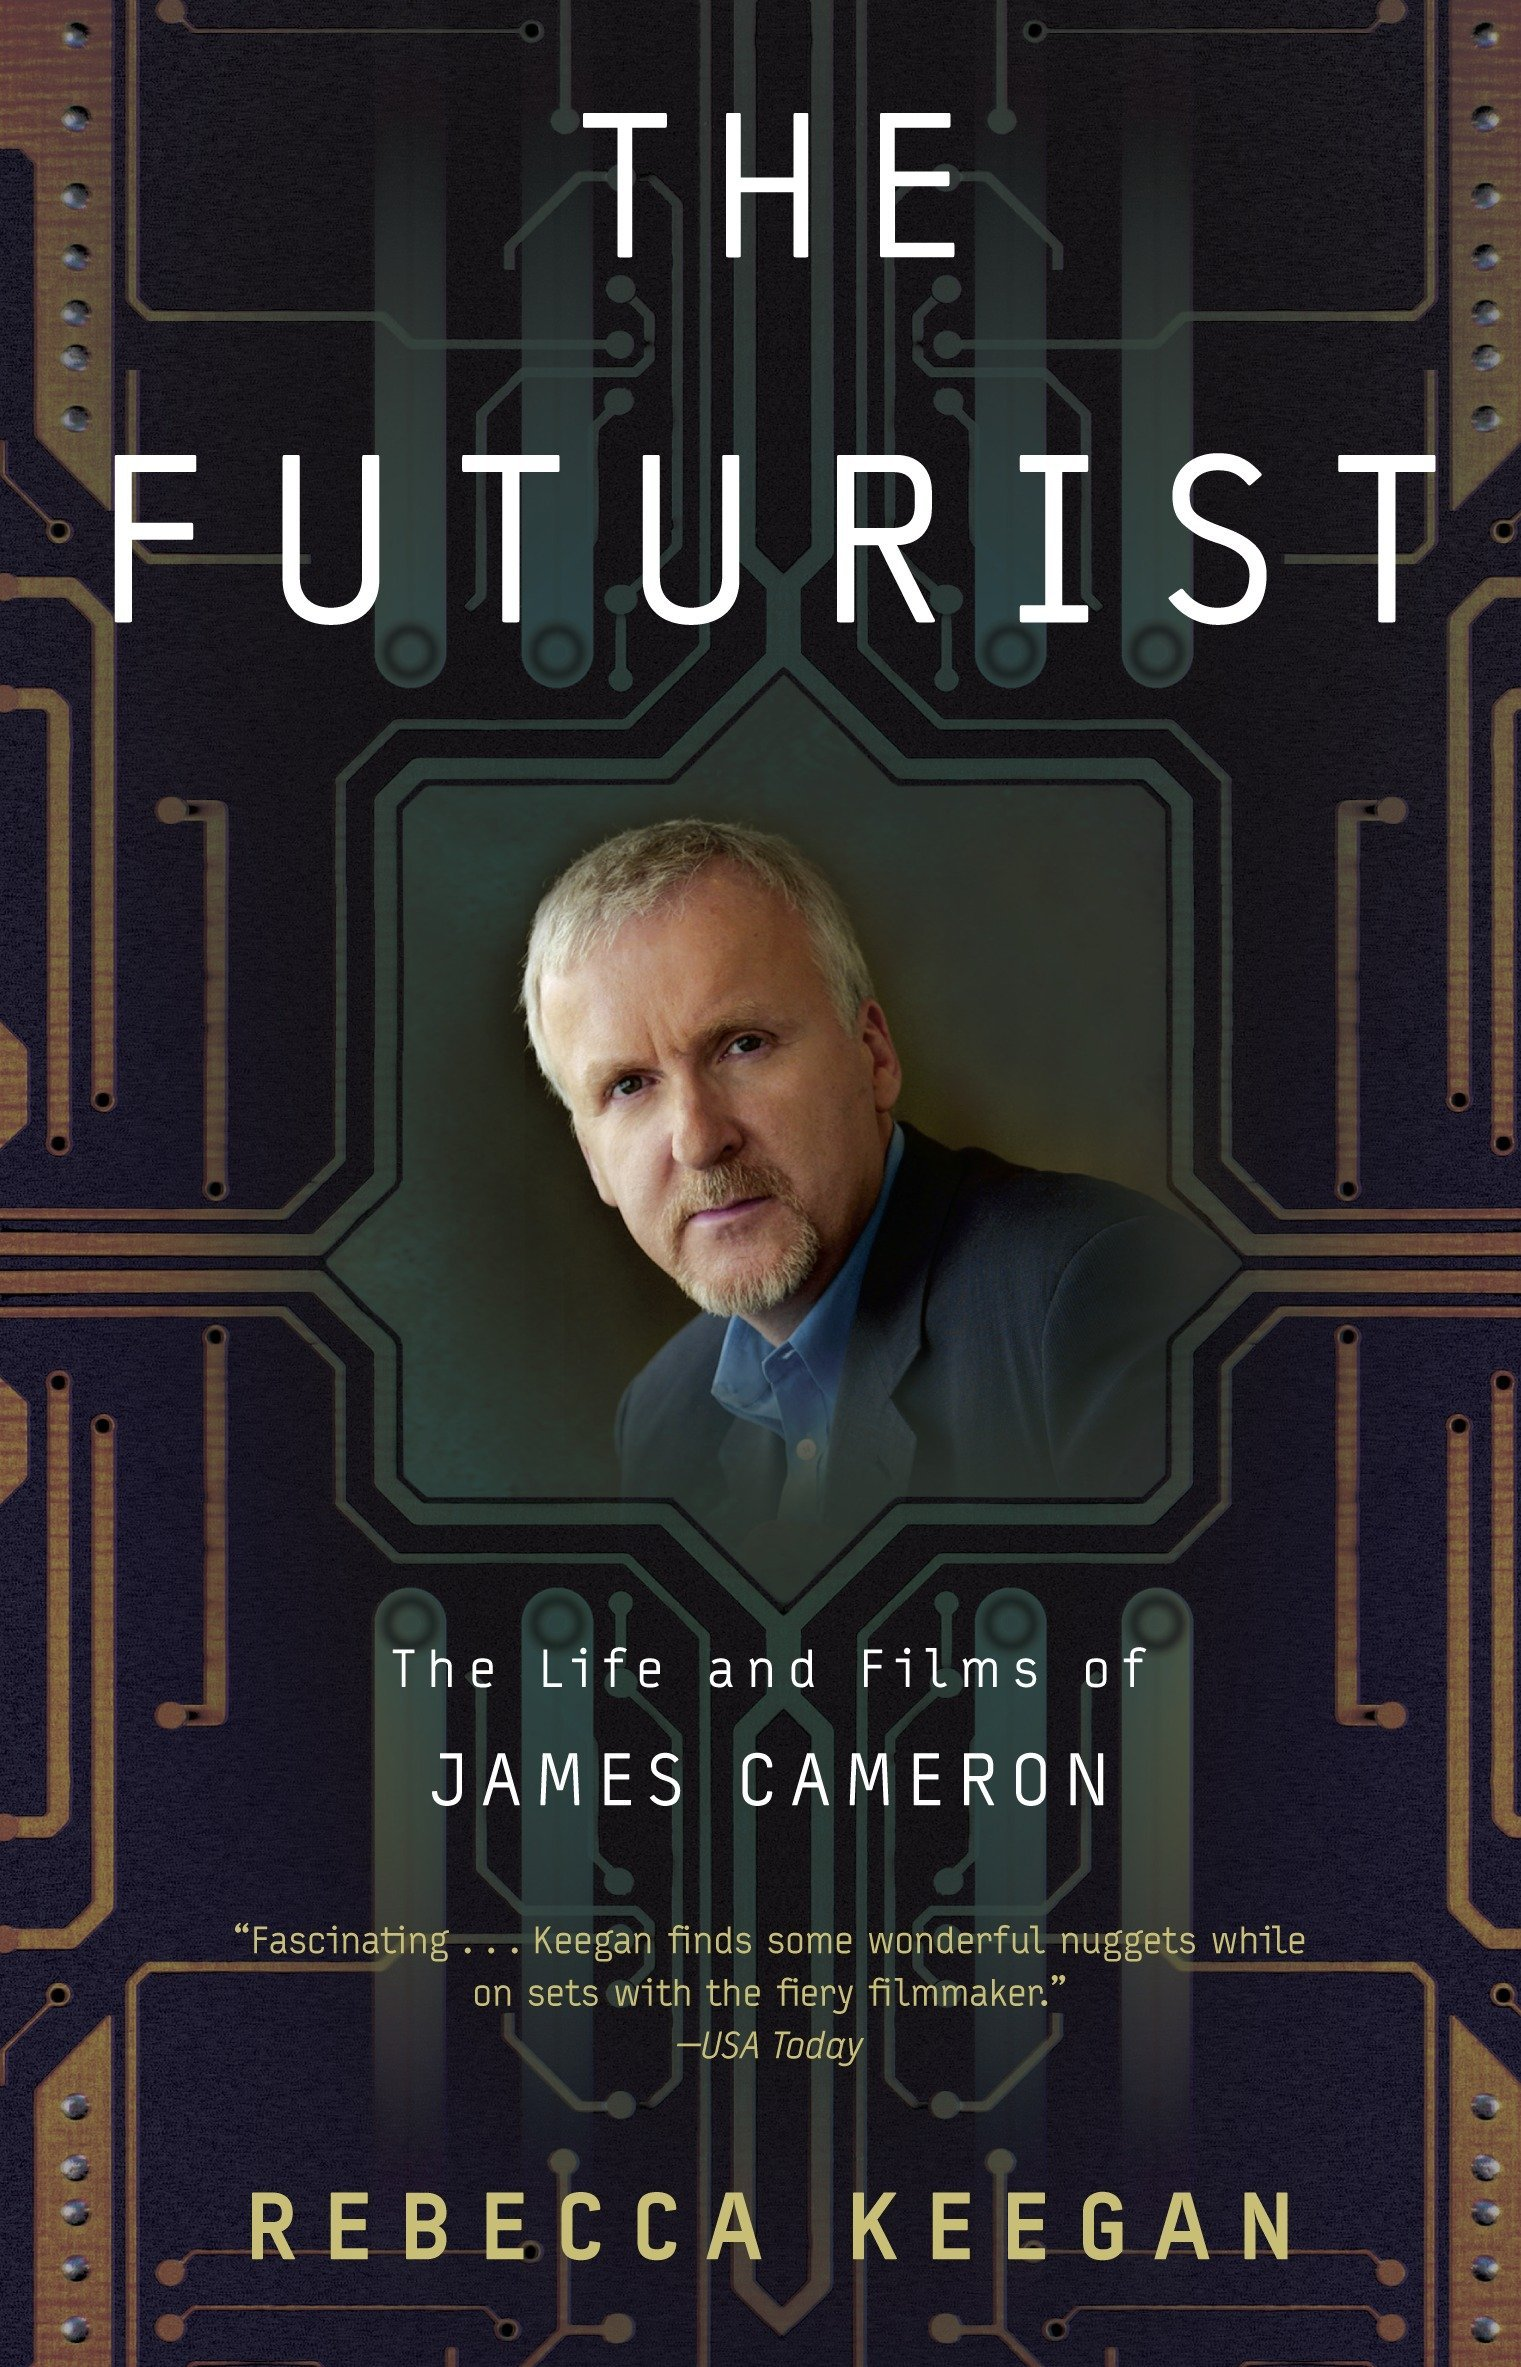 James Cameron (James Cameron) biography of the director, photo 2018 52